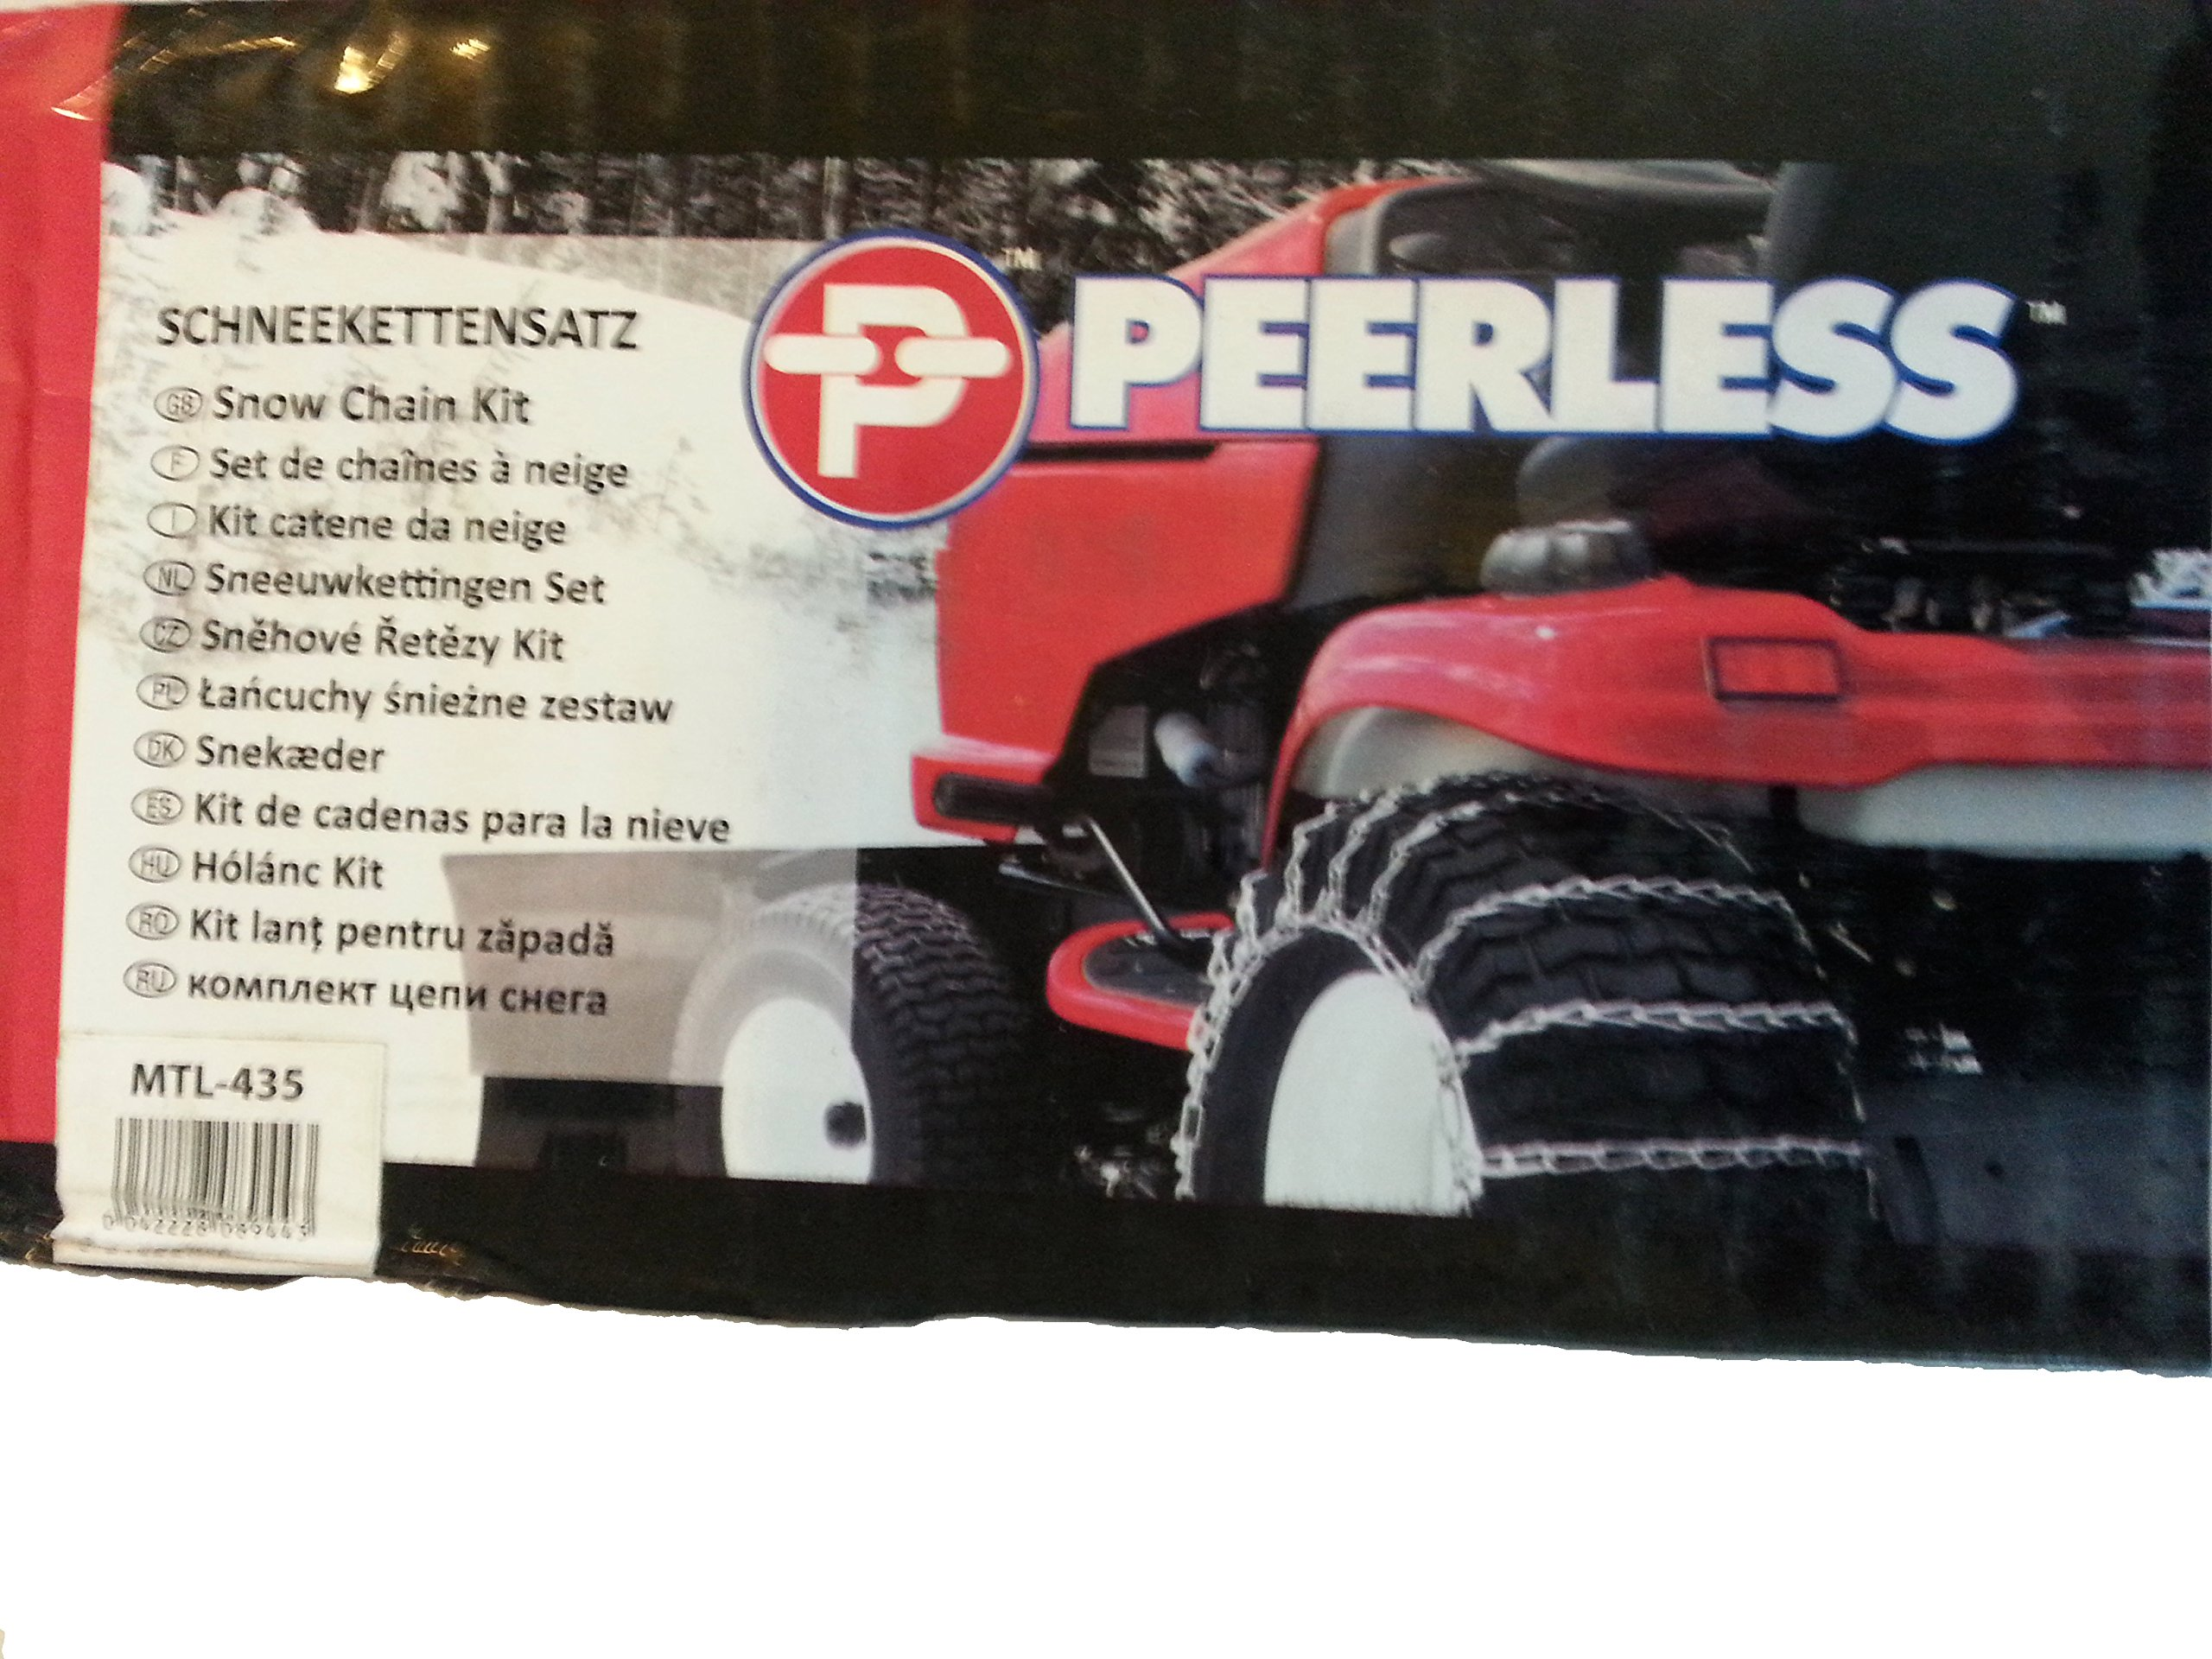 Peerless MTL-417 Garden Tractor 2 link Ladder Style Tire Chains 12x3, 4.50x4, 4.10x5, 3.50x5, 4.10/3.50-5 by MaxTrac (Image #1)